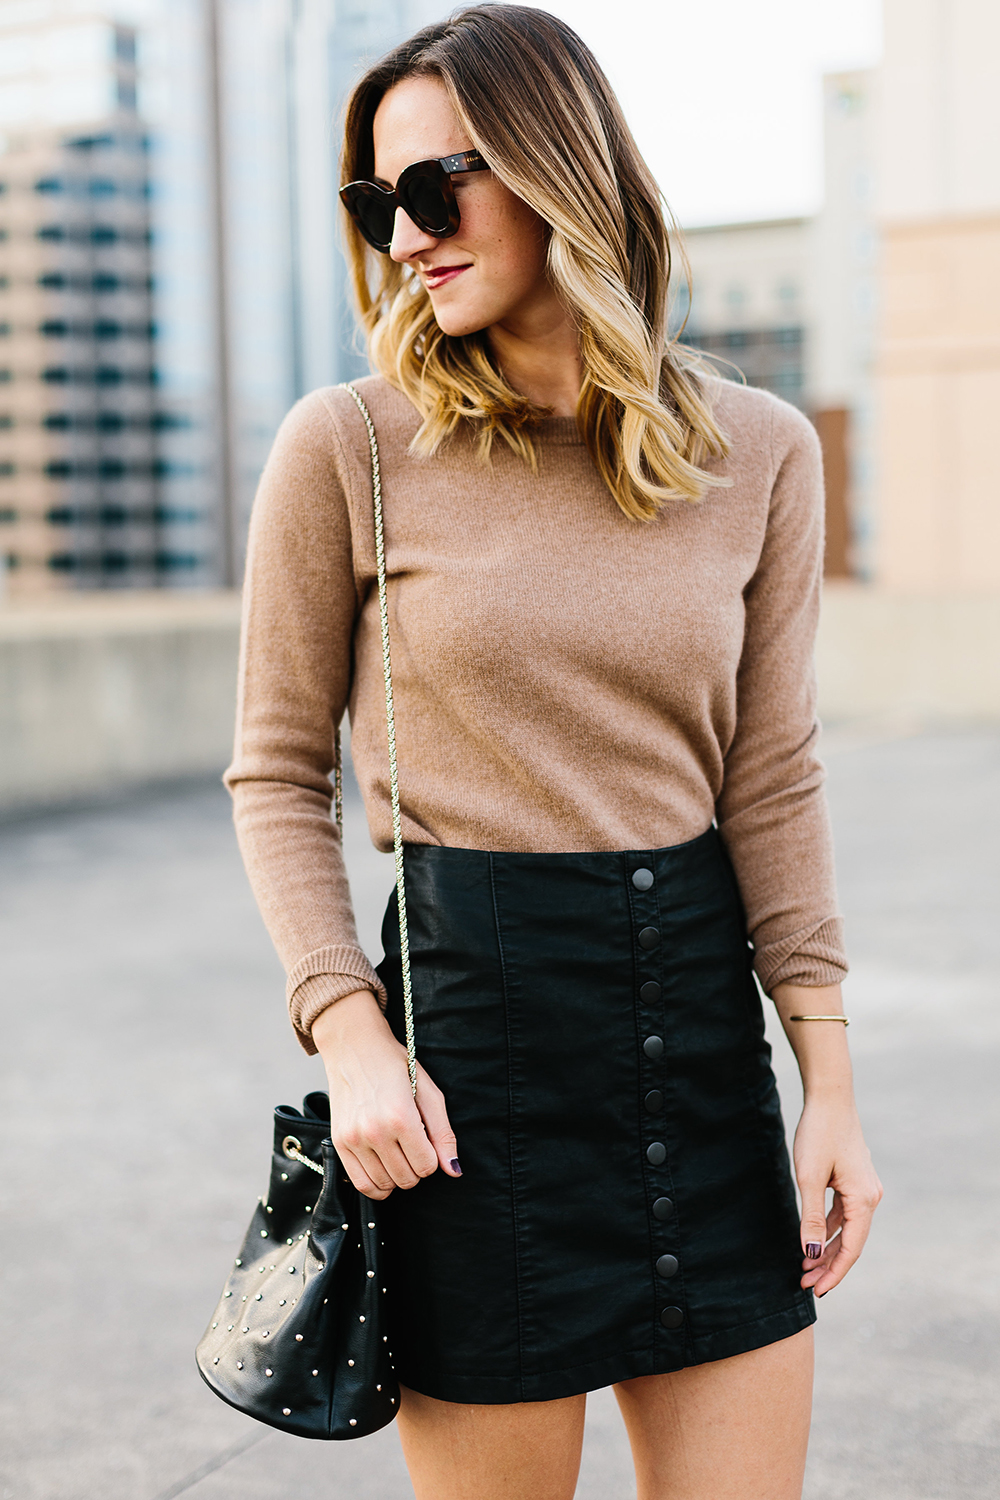 livvyland-blog-olivia-watson-free-people-vegan-leather-mini-skirt-cashmere-tan-sweater-sezane-studded-bucket-bag-10